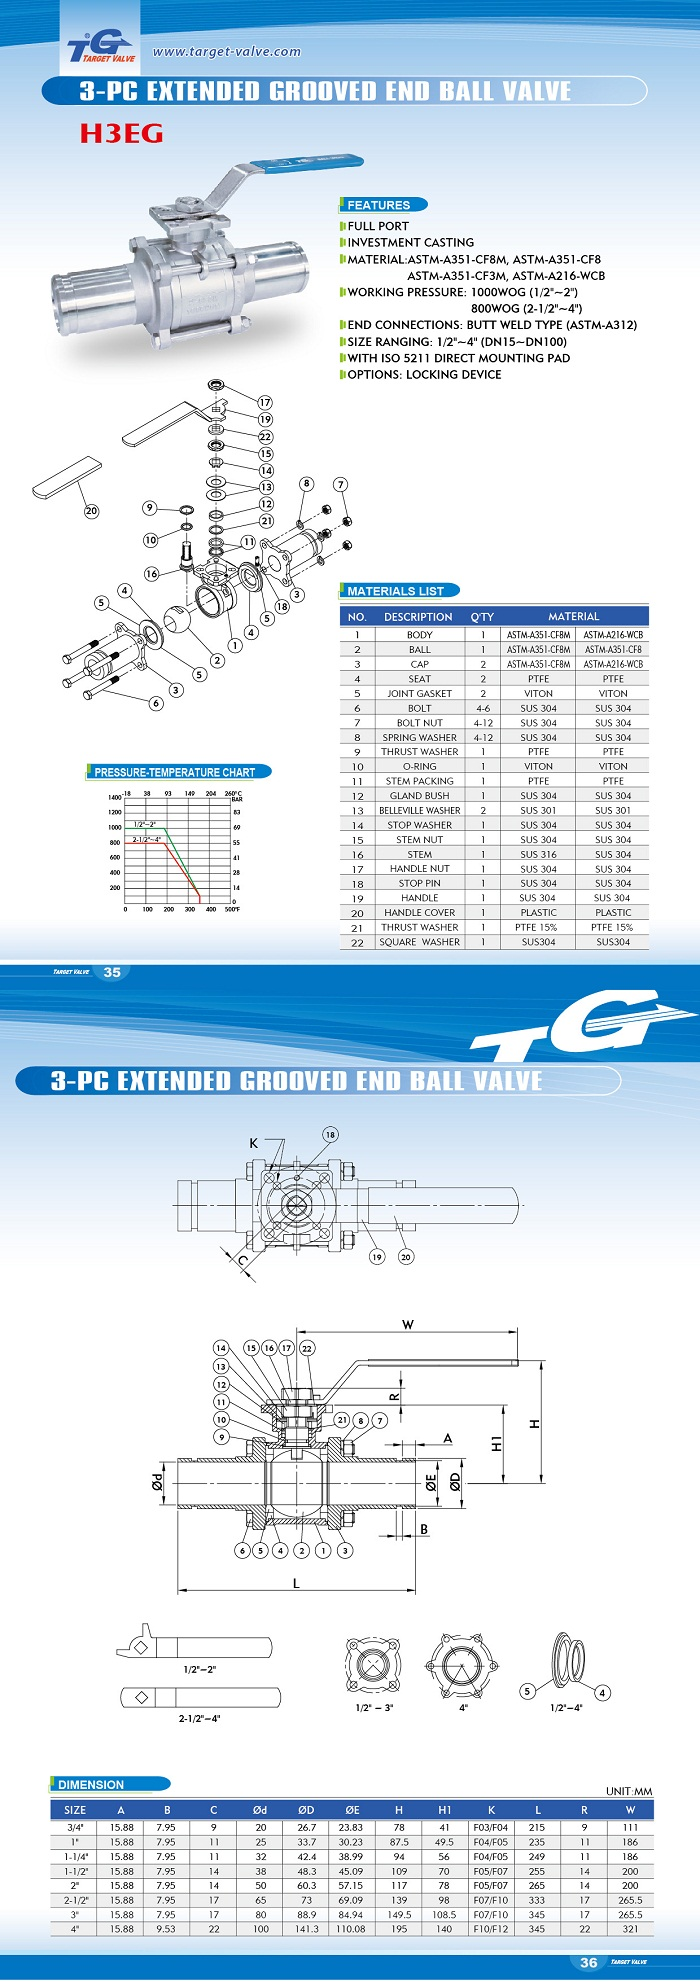 3 PC EXTENDED GROOVED END BALL VALVE - H3EG